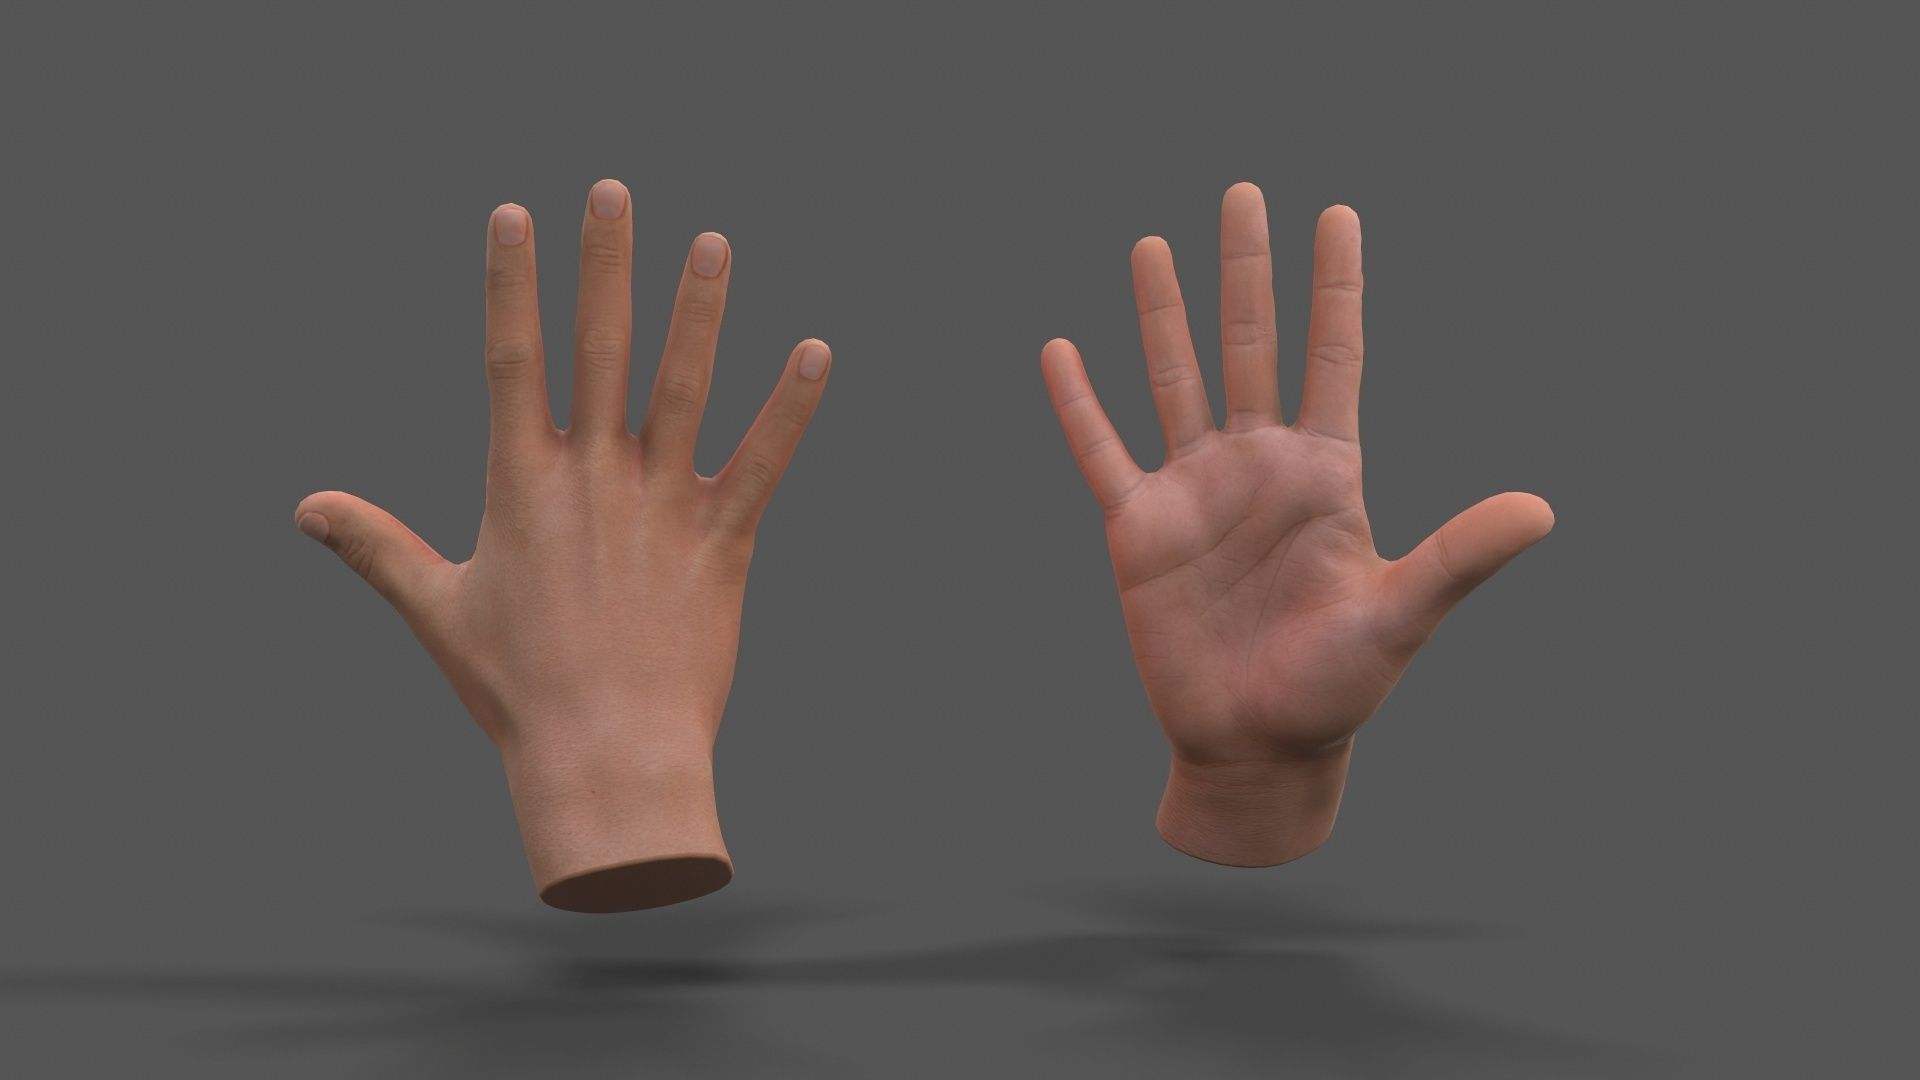 VR Hands - Male Hands